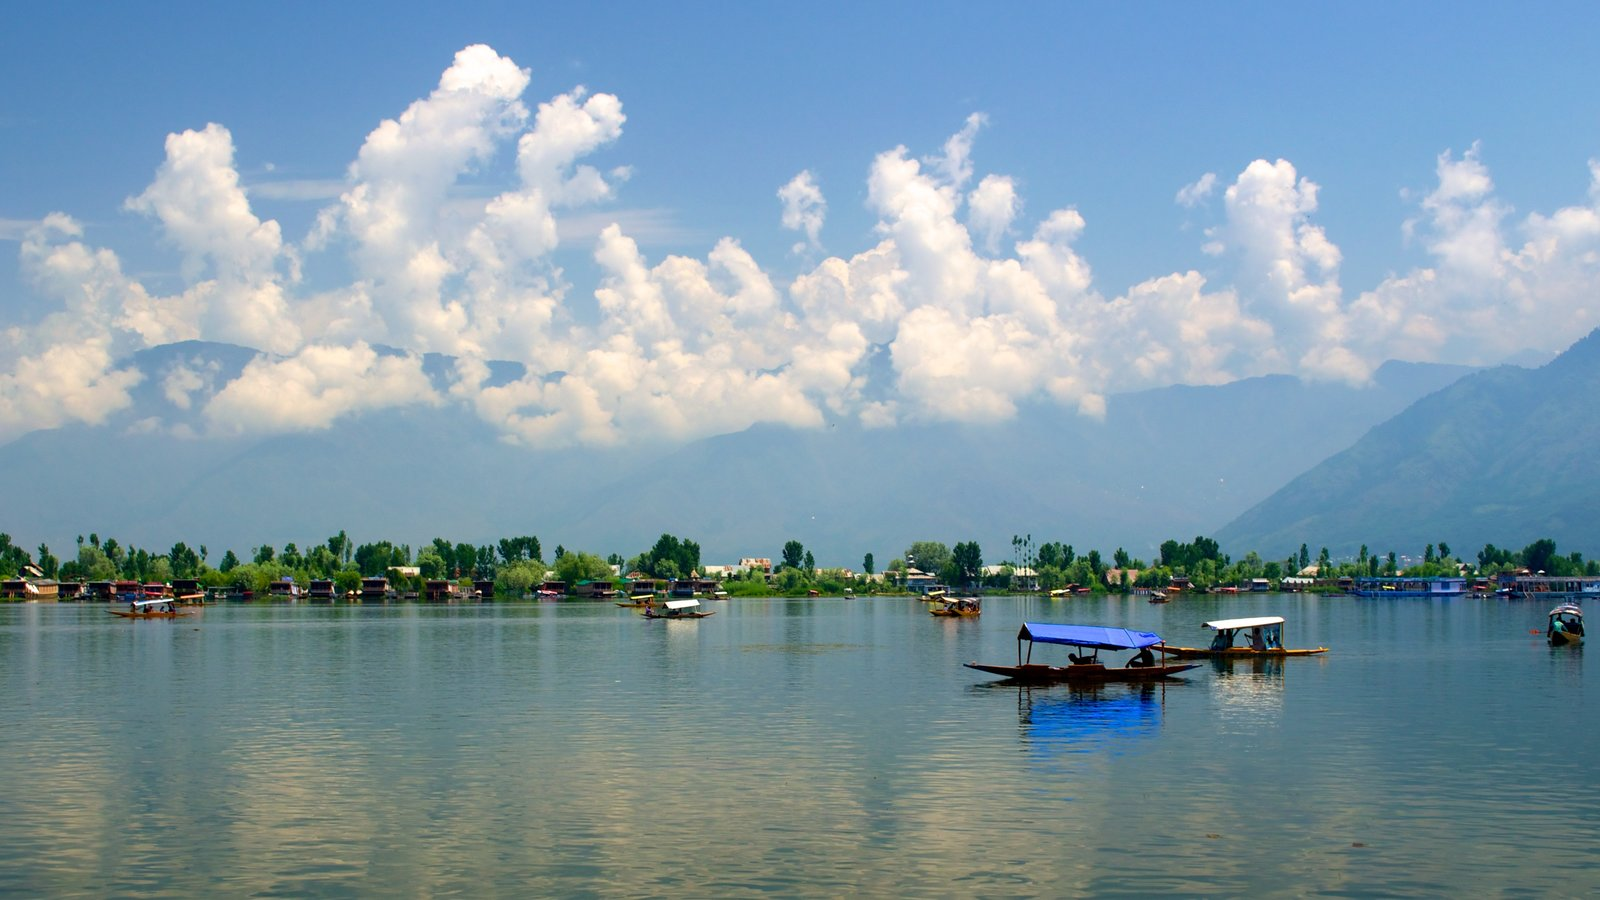 Srinagar which includes boating and a river or creek